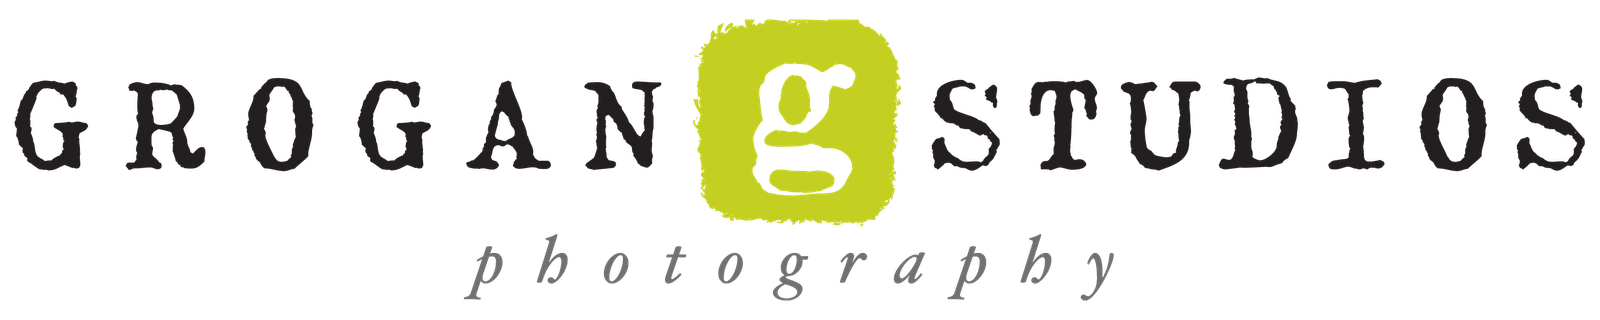 Grogan Studios Blog